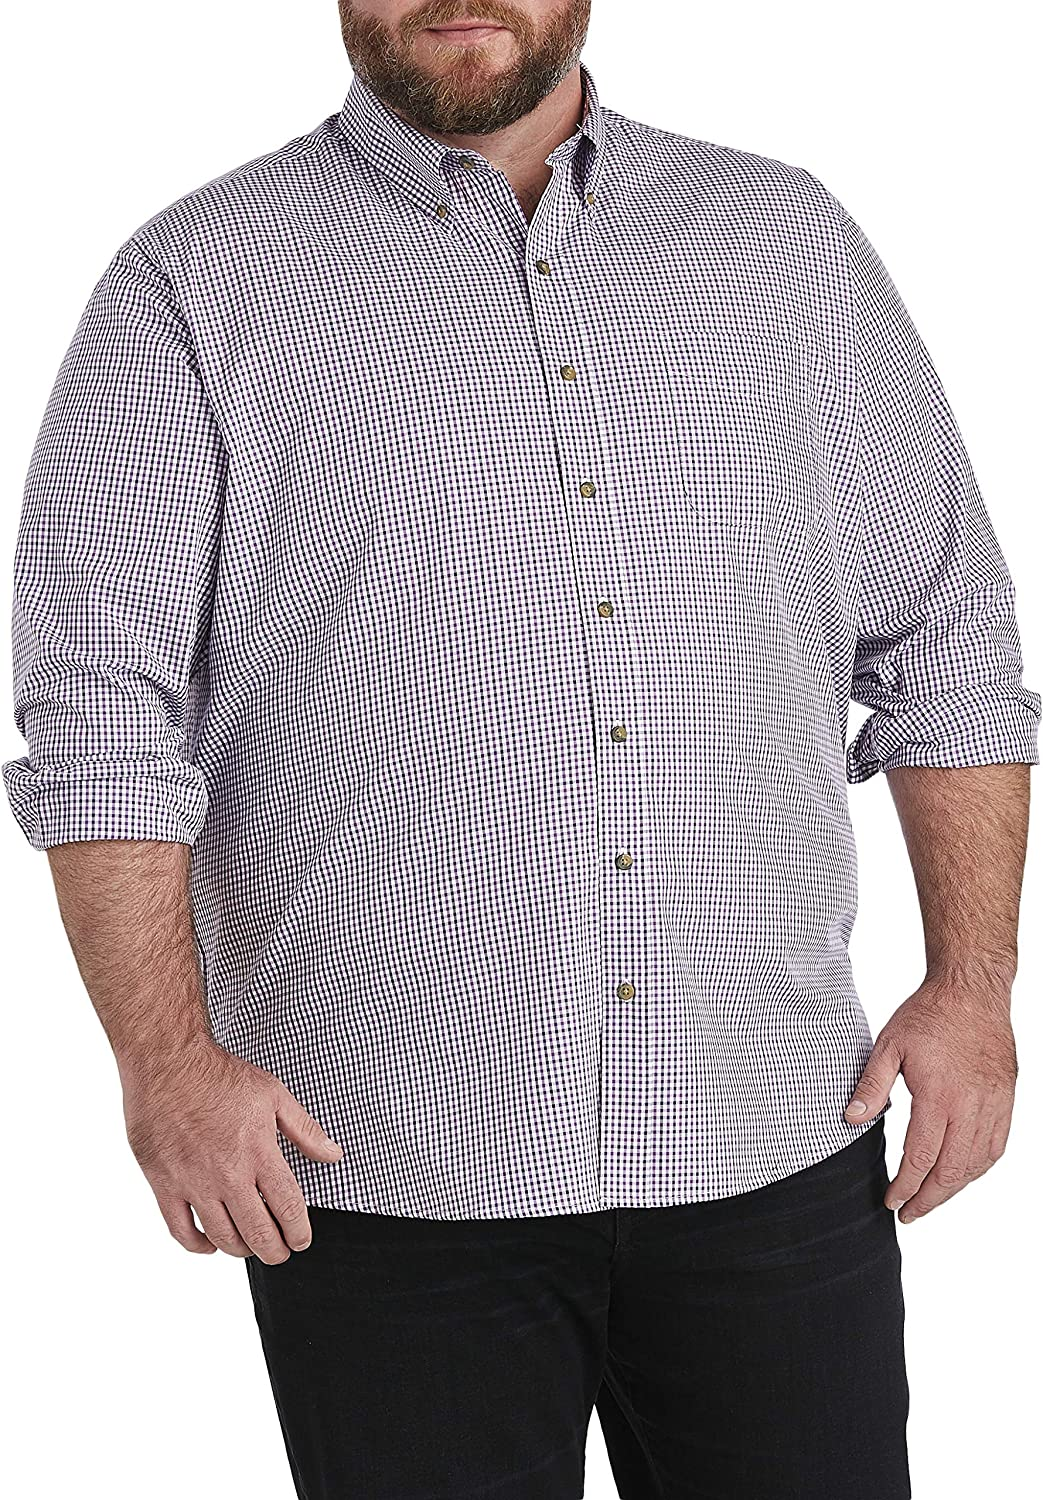 Harbor Bay by DXL Big and Tall Easy-Care Gingham Sport Shirt, Purple Plumeria